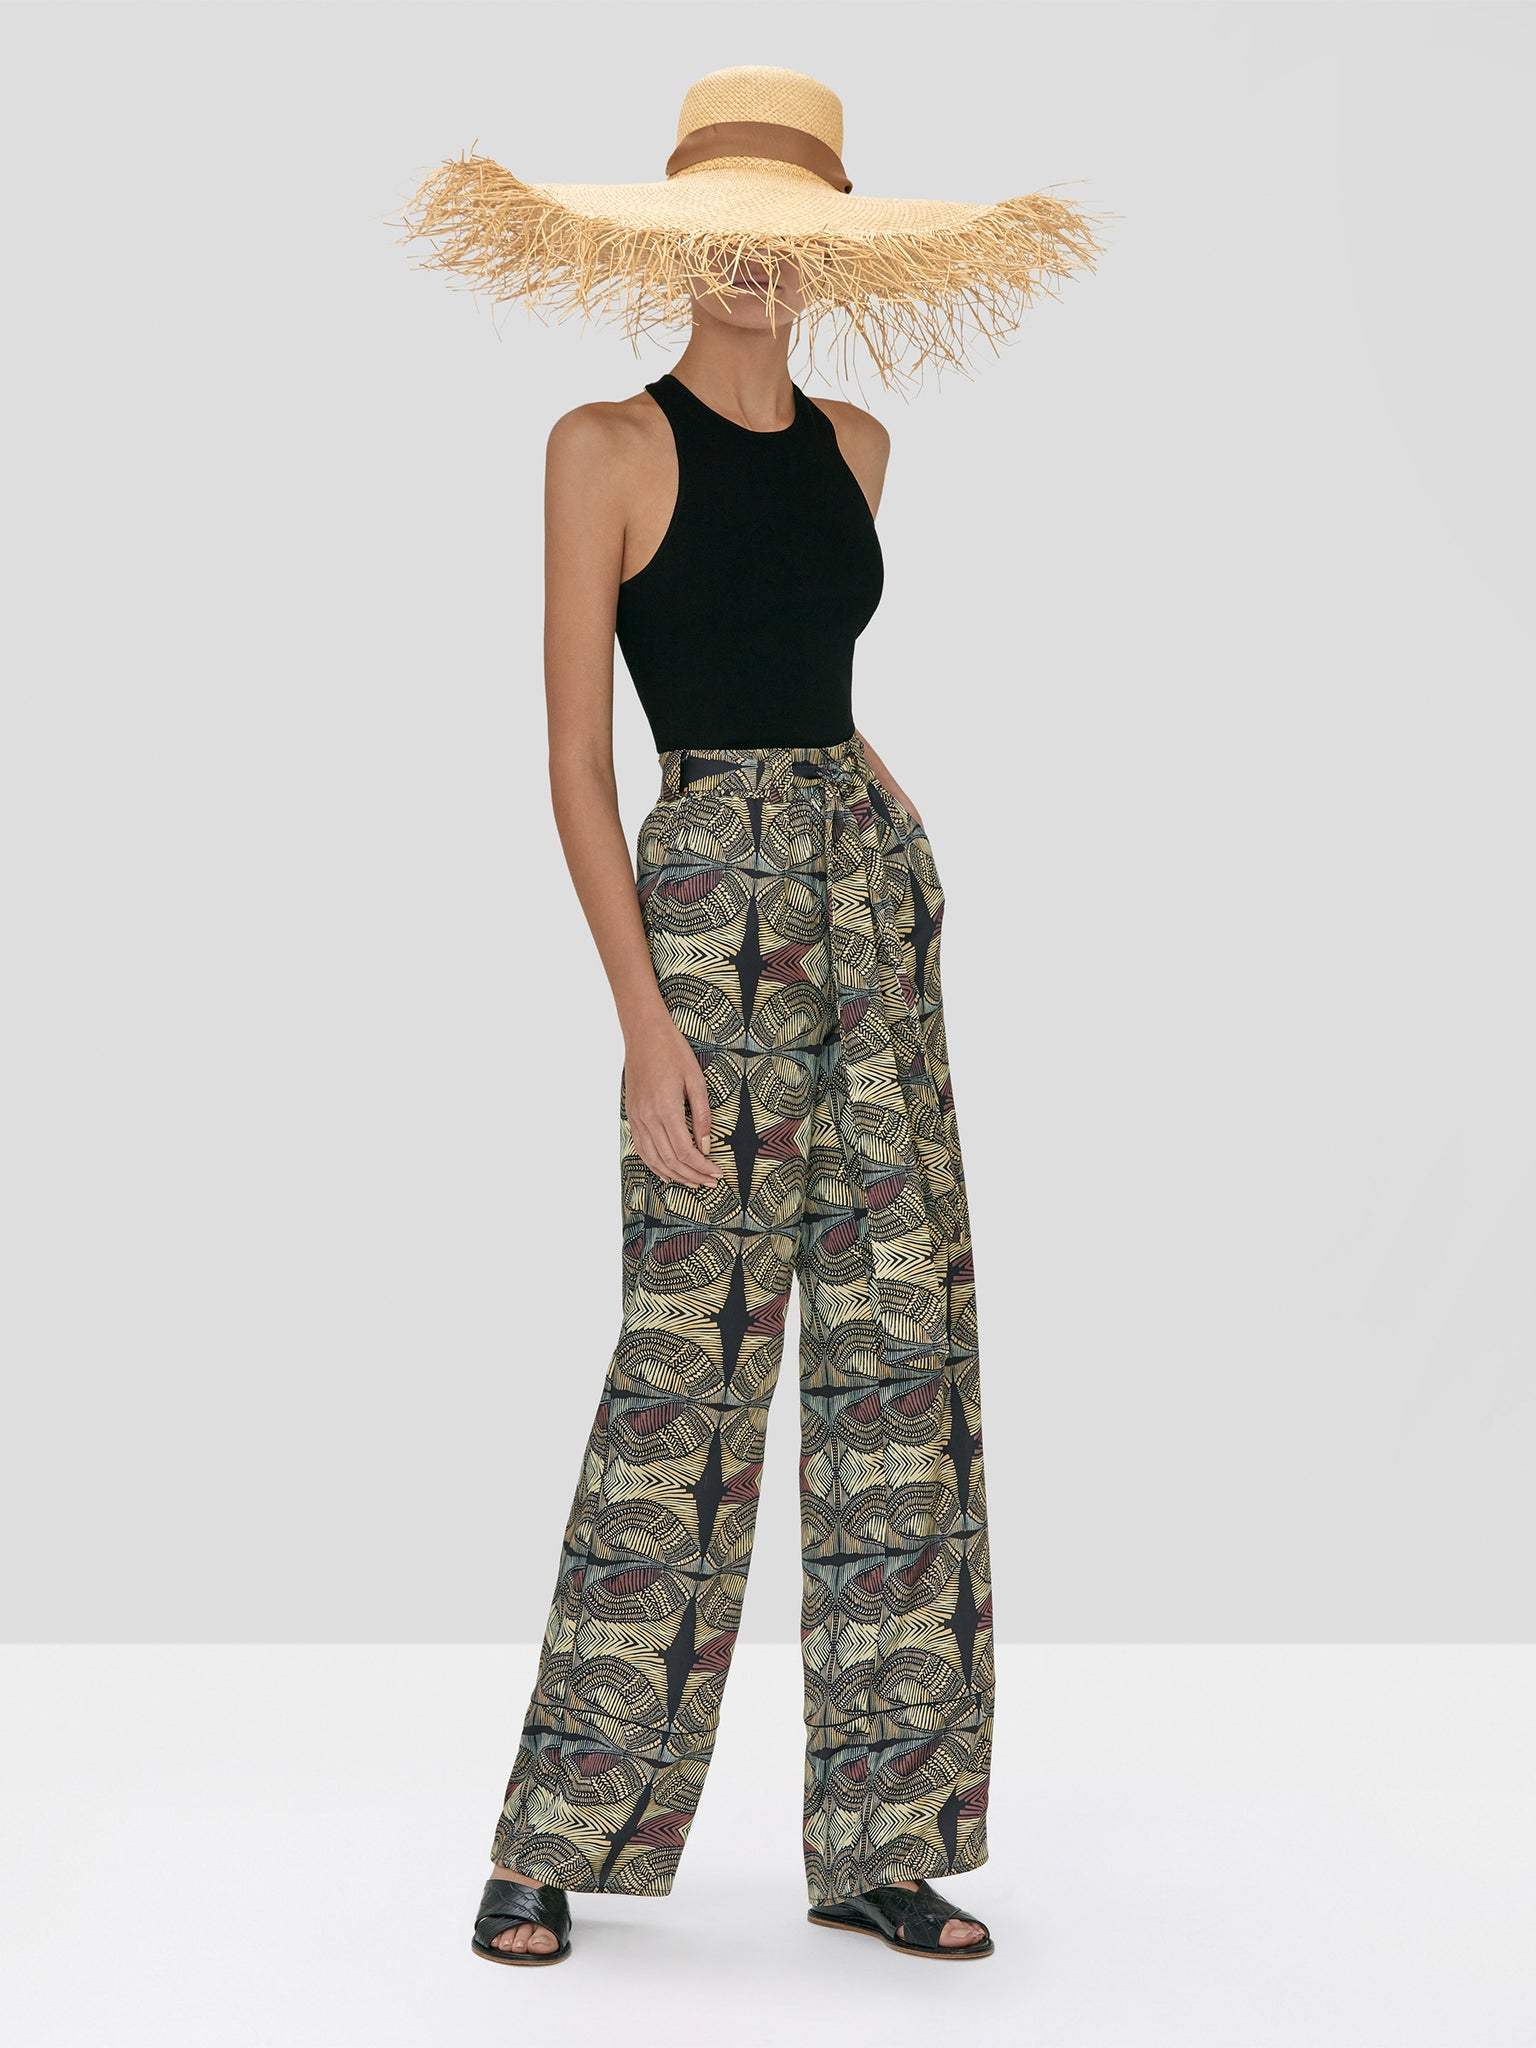 Alexis Zeni Top Black and Amptin Pant in Safari from Spring Summer 2020 Collection